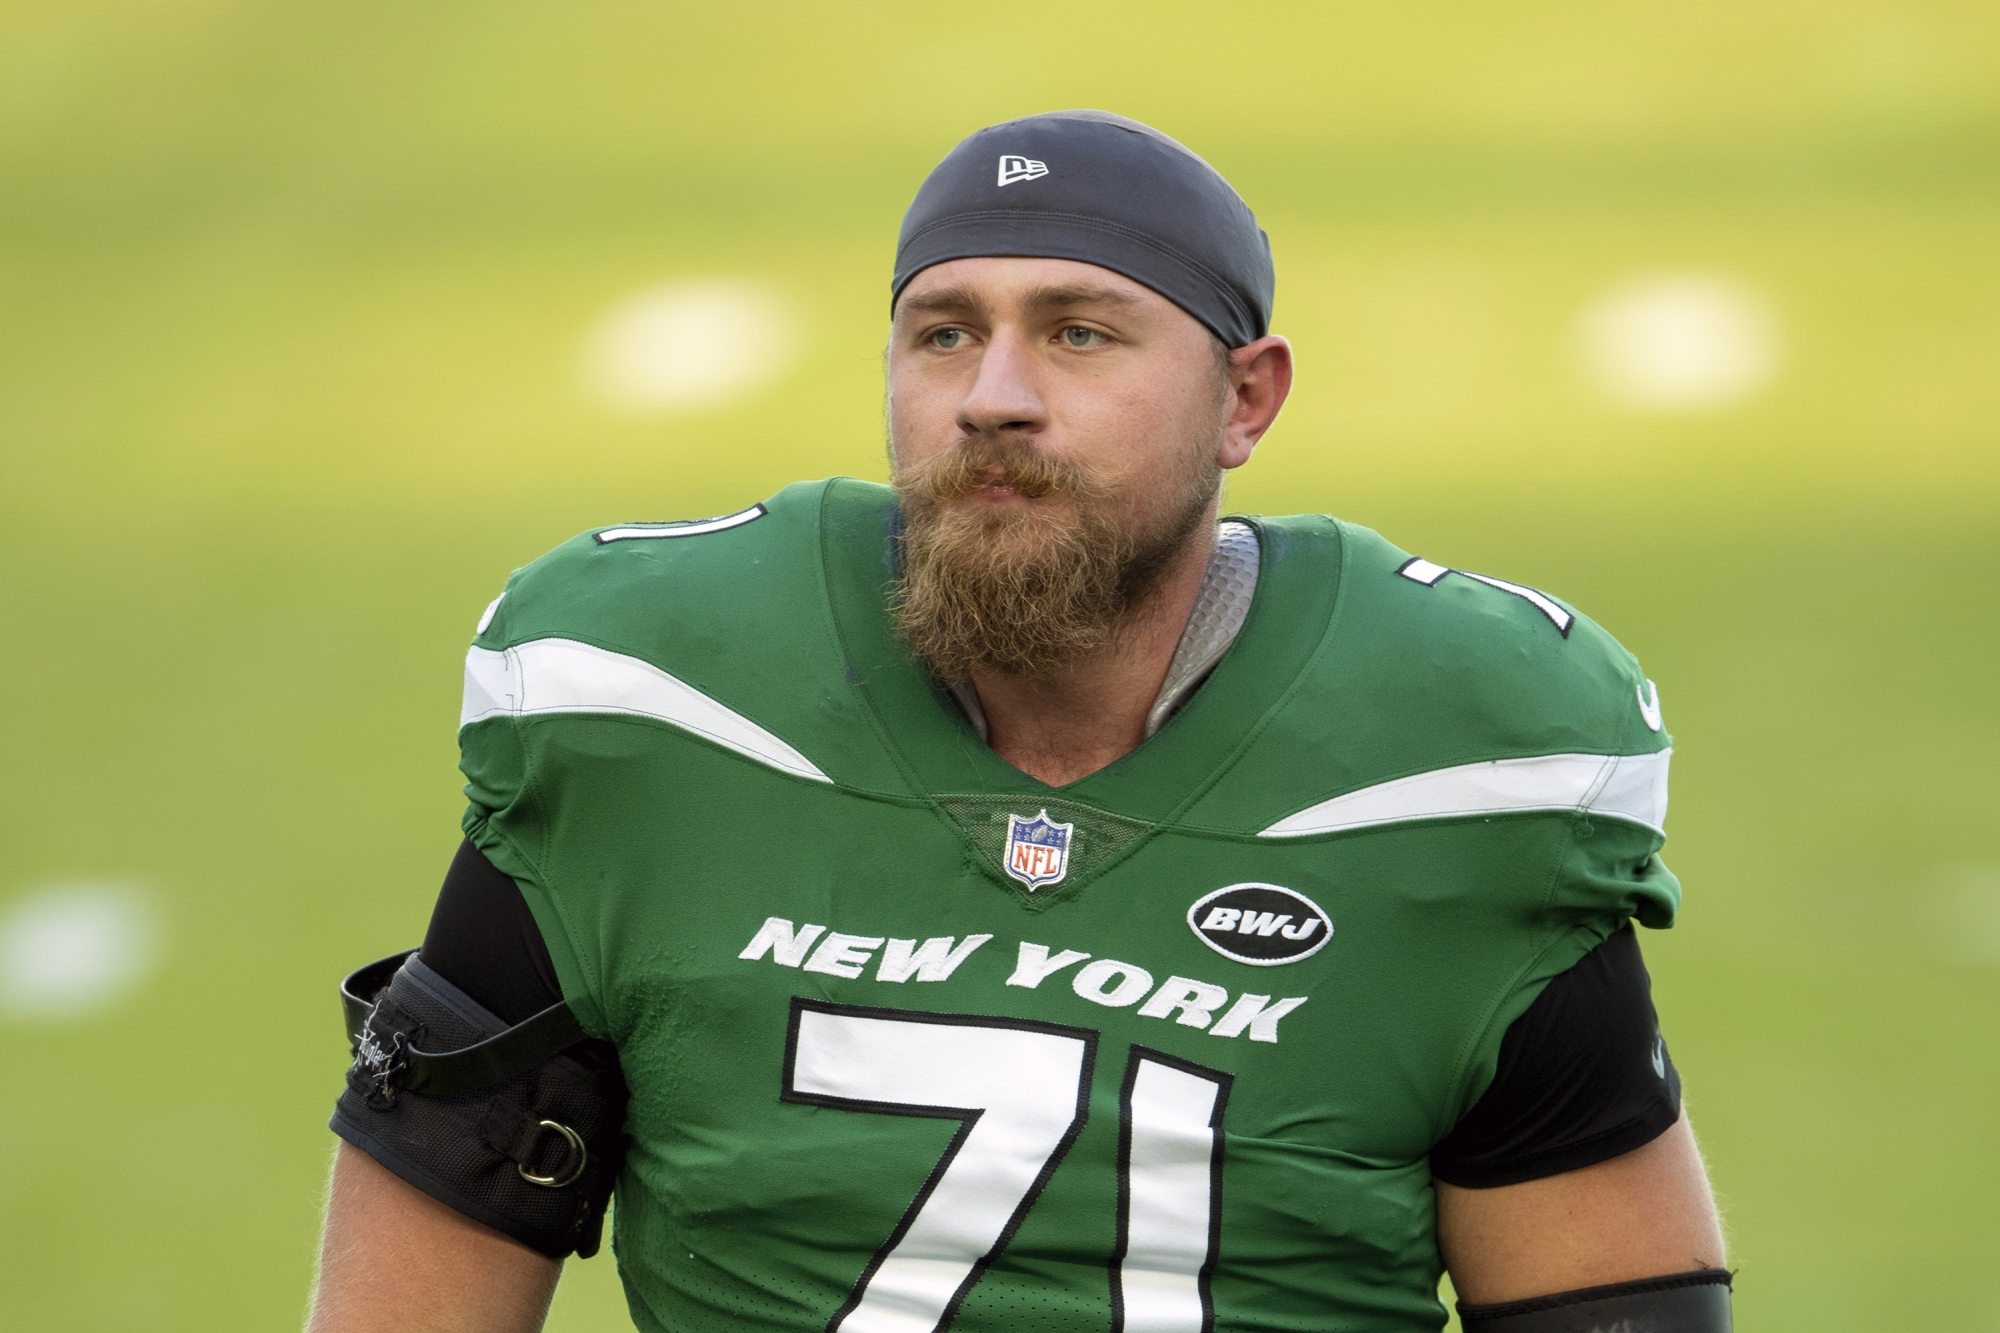 Jets place LG Alex Lewis on non-football injury list | WTOP